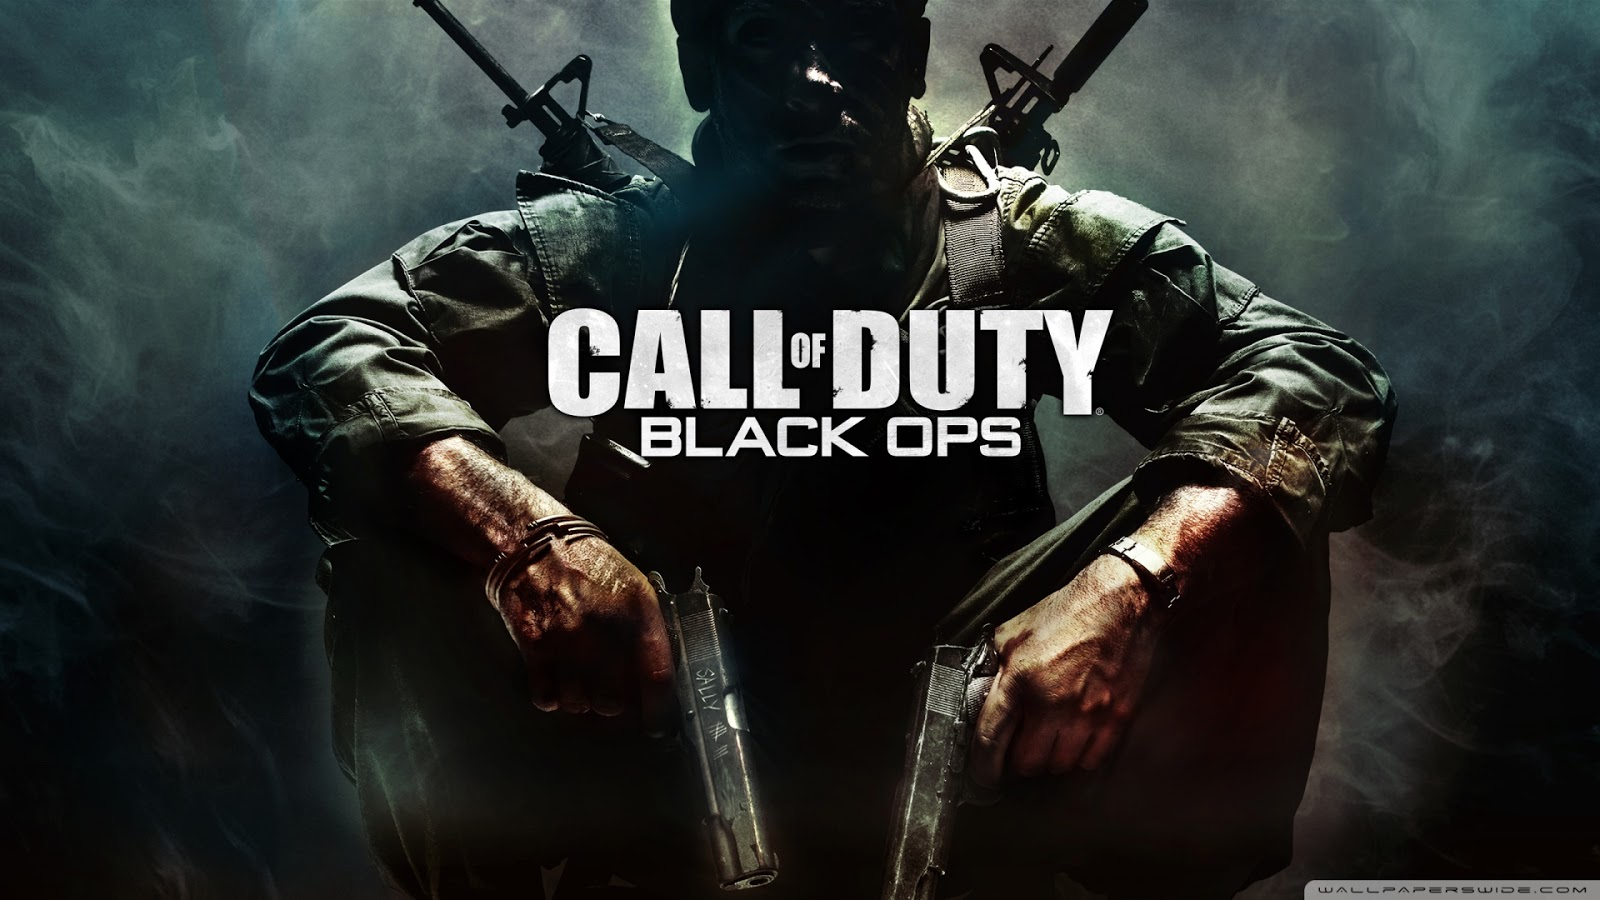 Call of Duty Black Ops Zombie+Multiplayer+Singleplayer